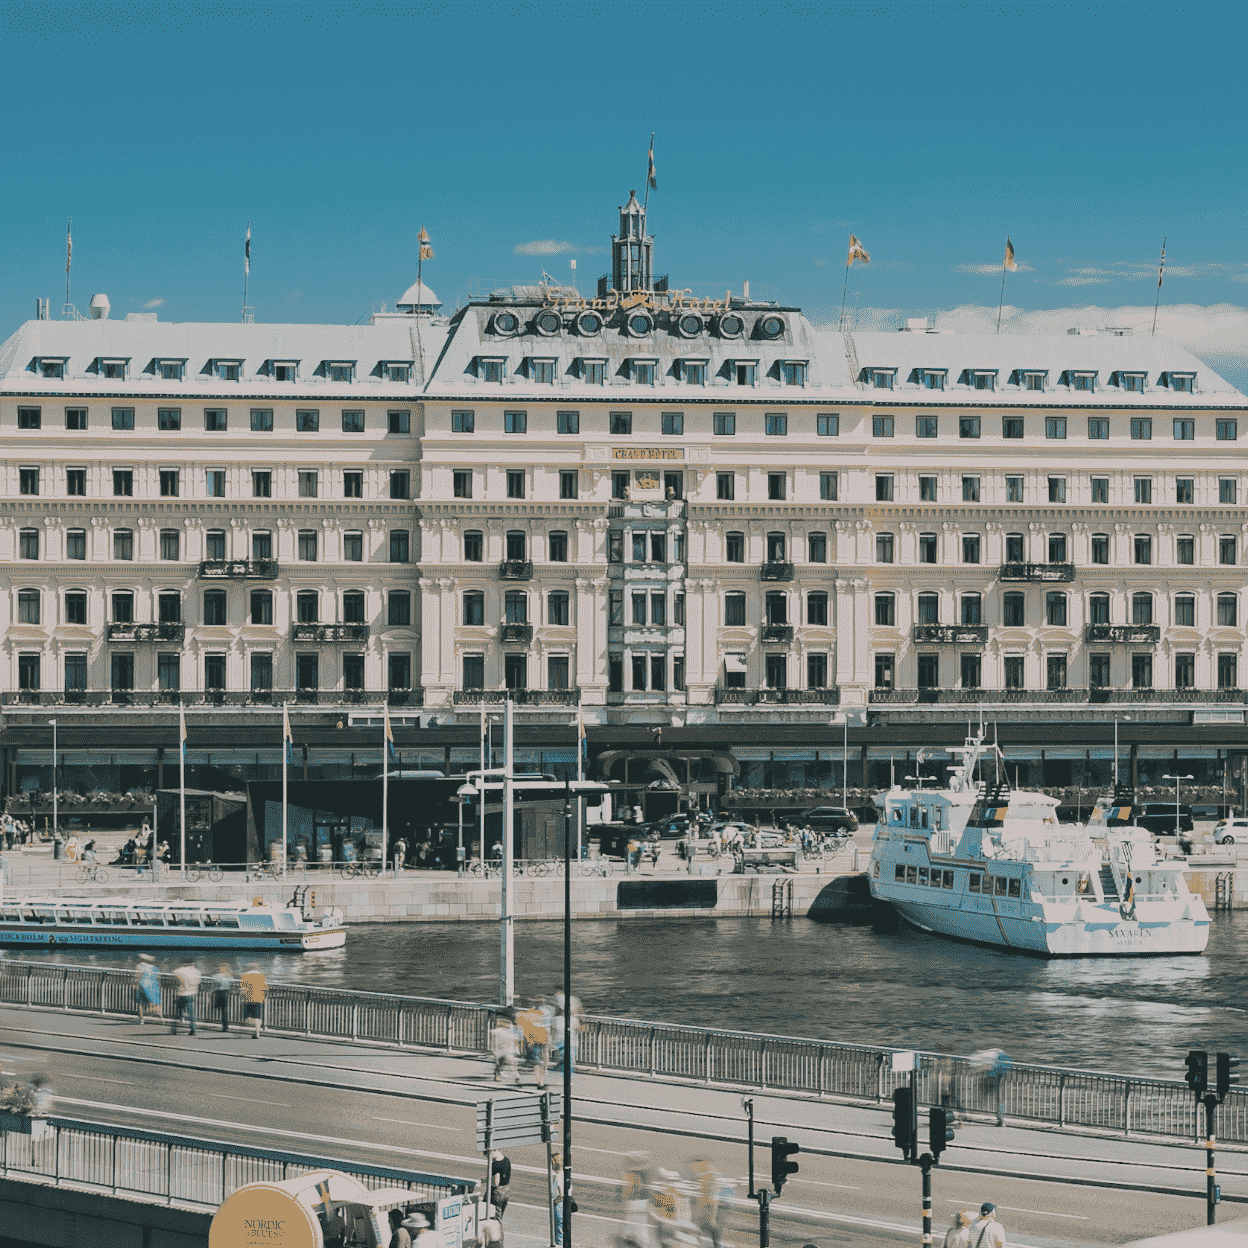 Picture of Grand hotel, where the workshops are performed